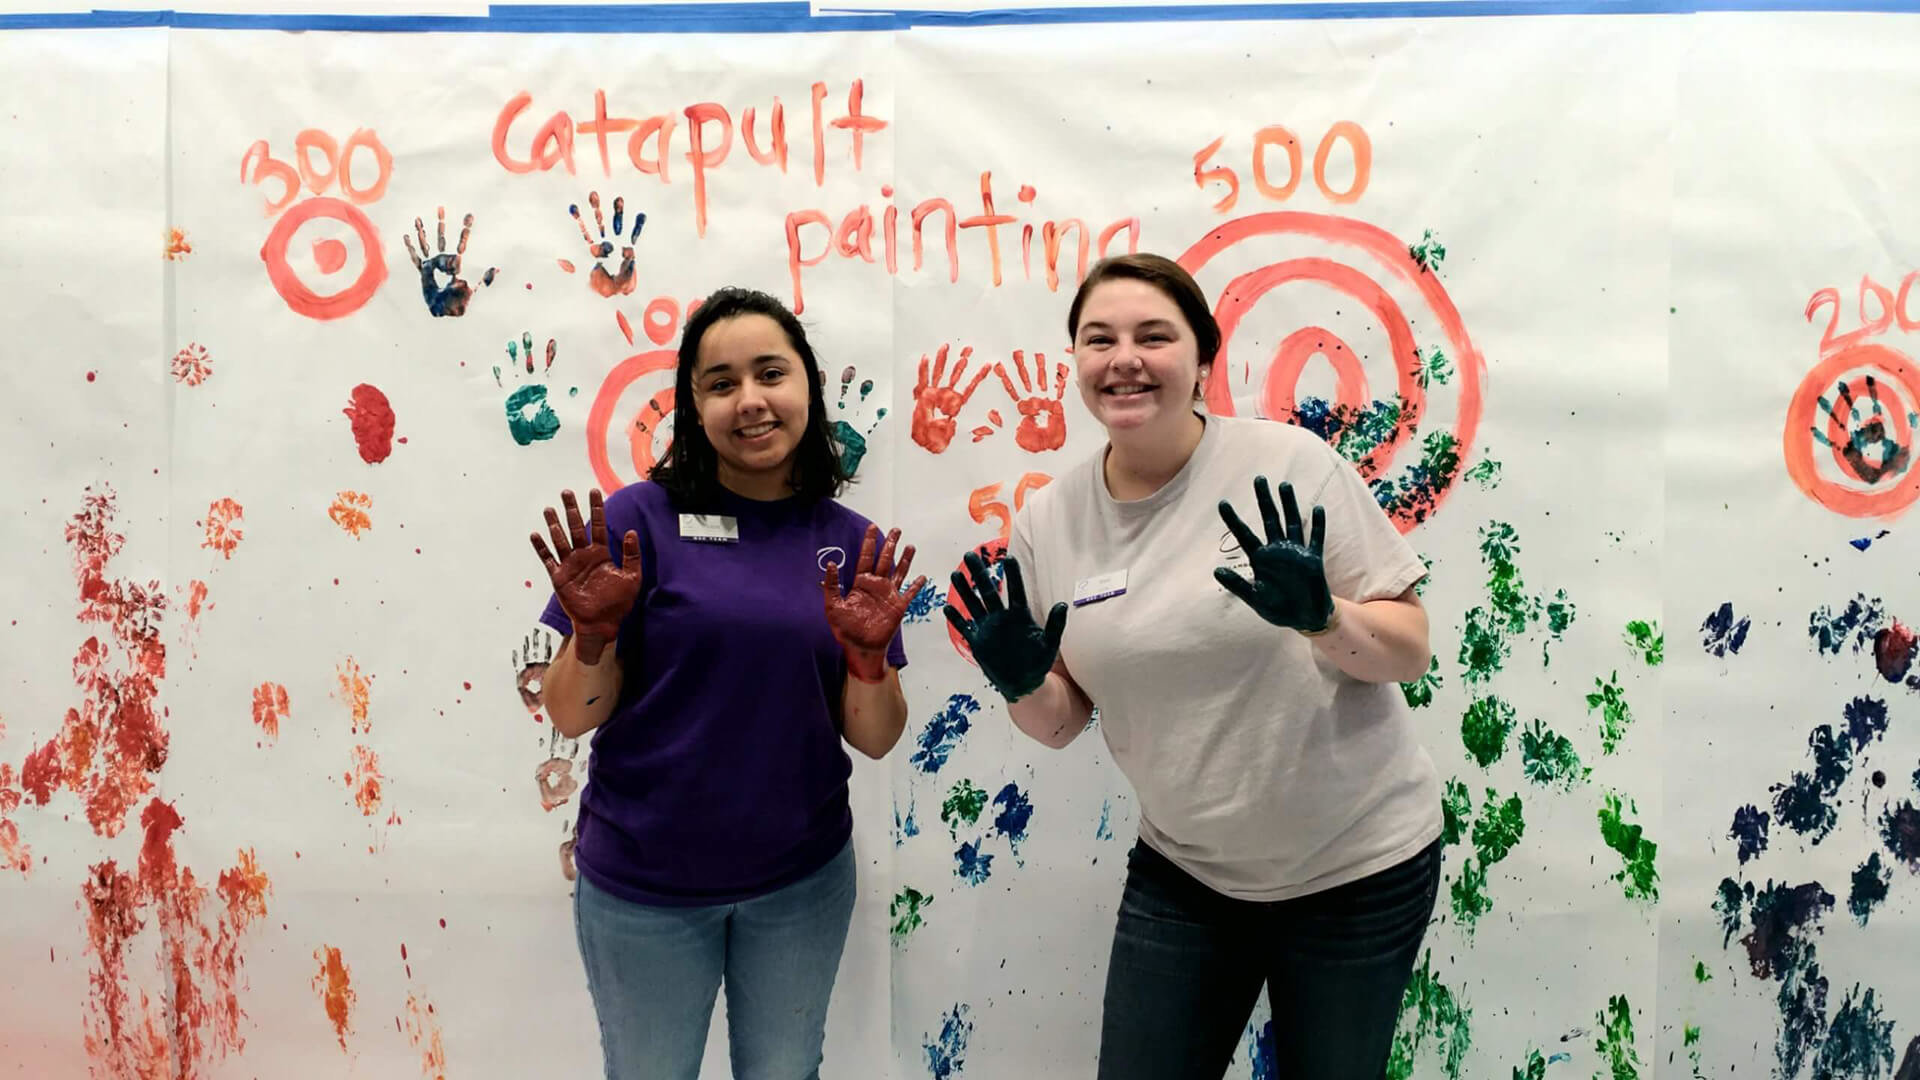 Two girls with paint everywhere on wall behind them.